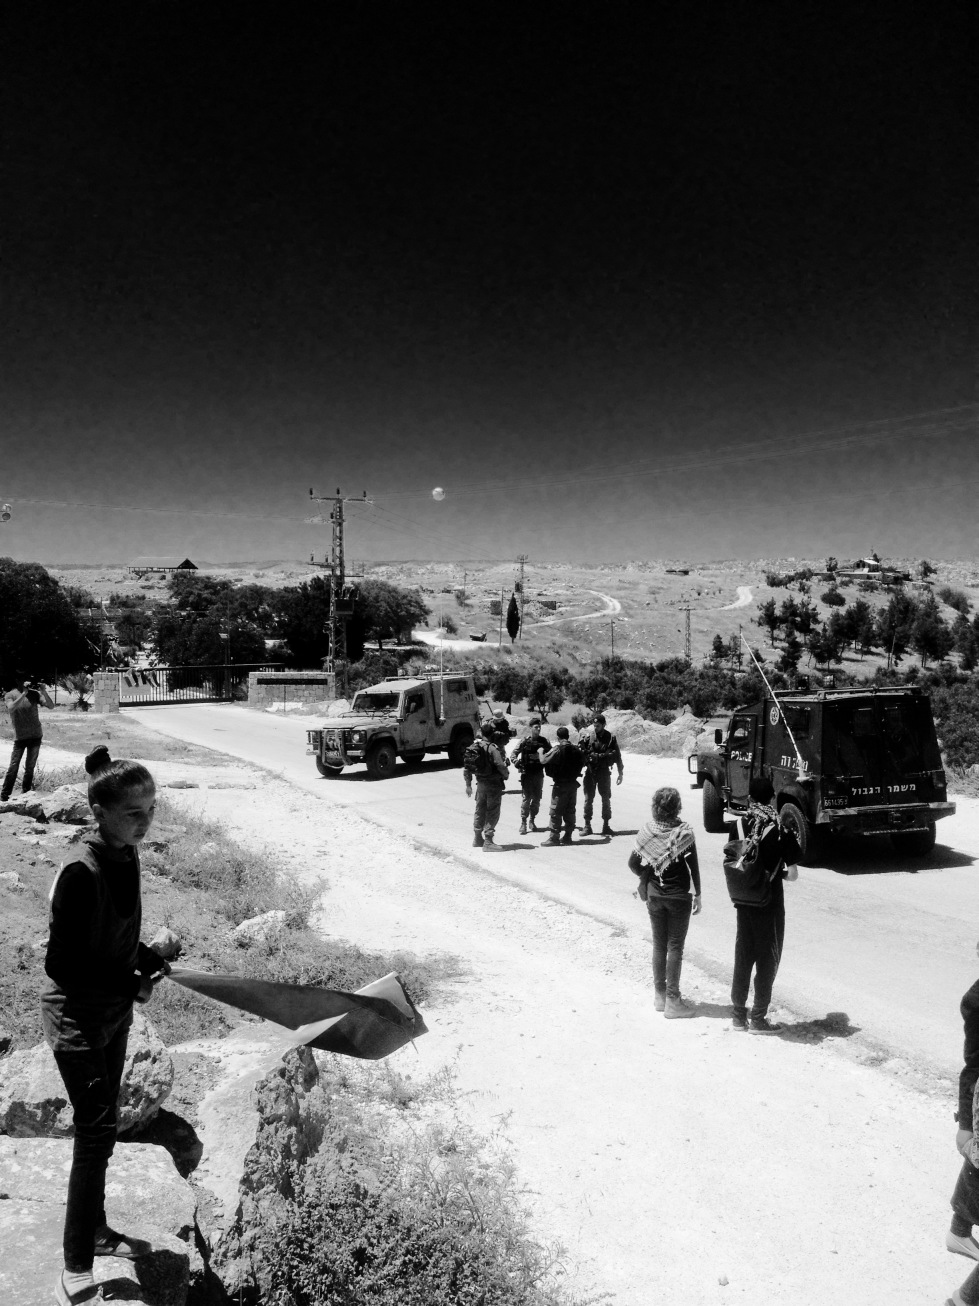 Threats, intimidation, courage, heat, steadfastness: Another day in the village of Susiya.